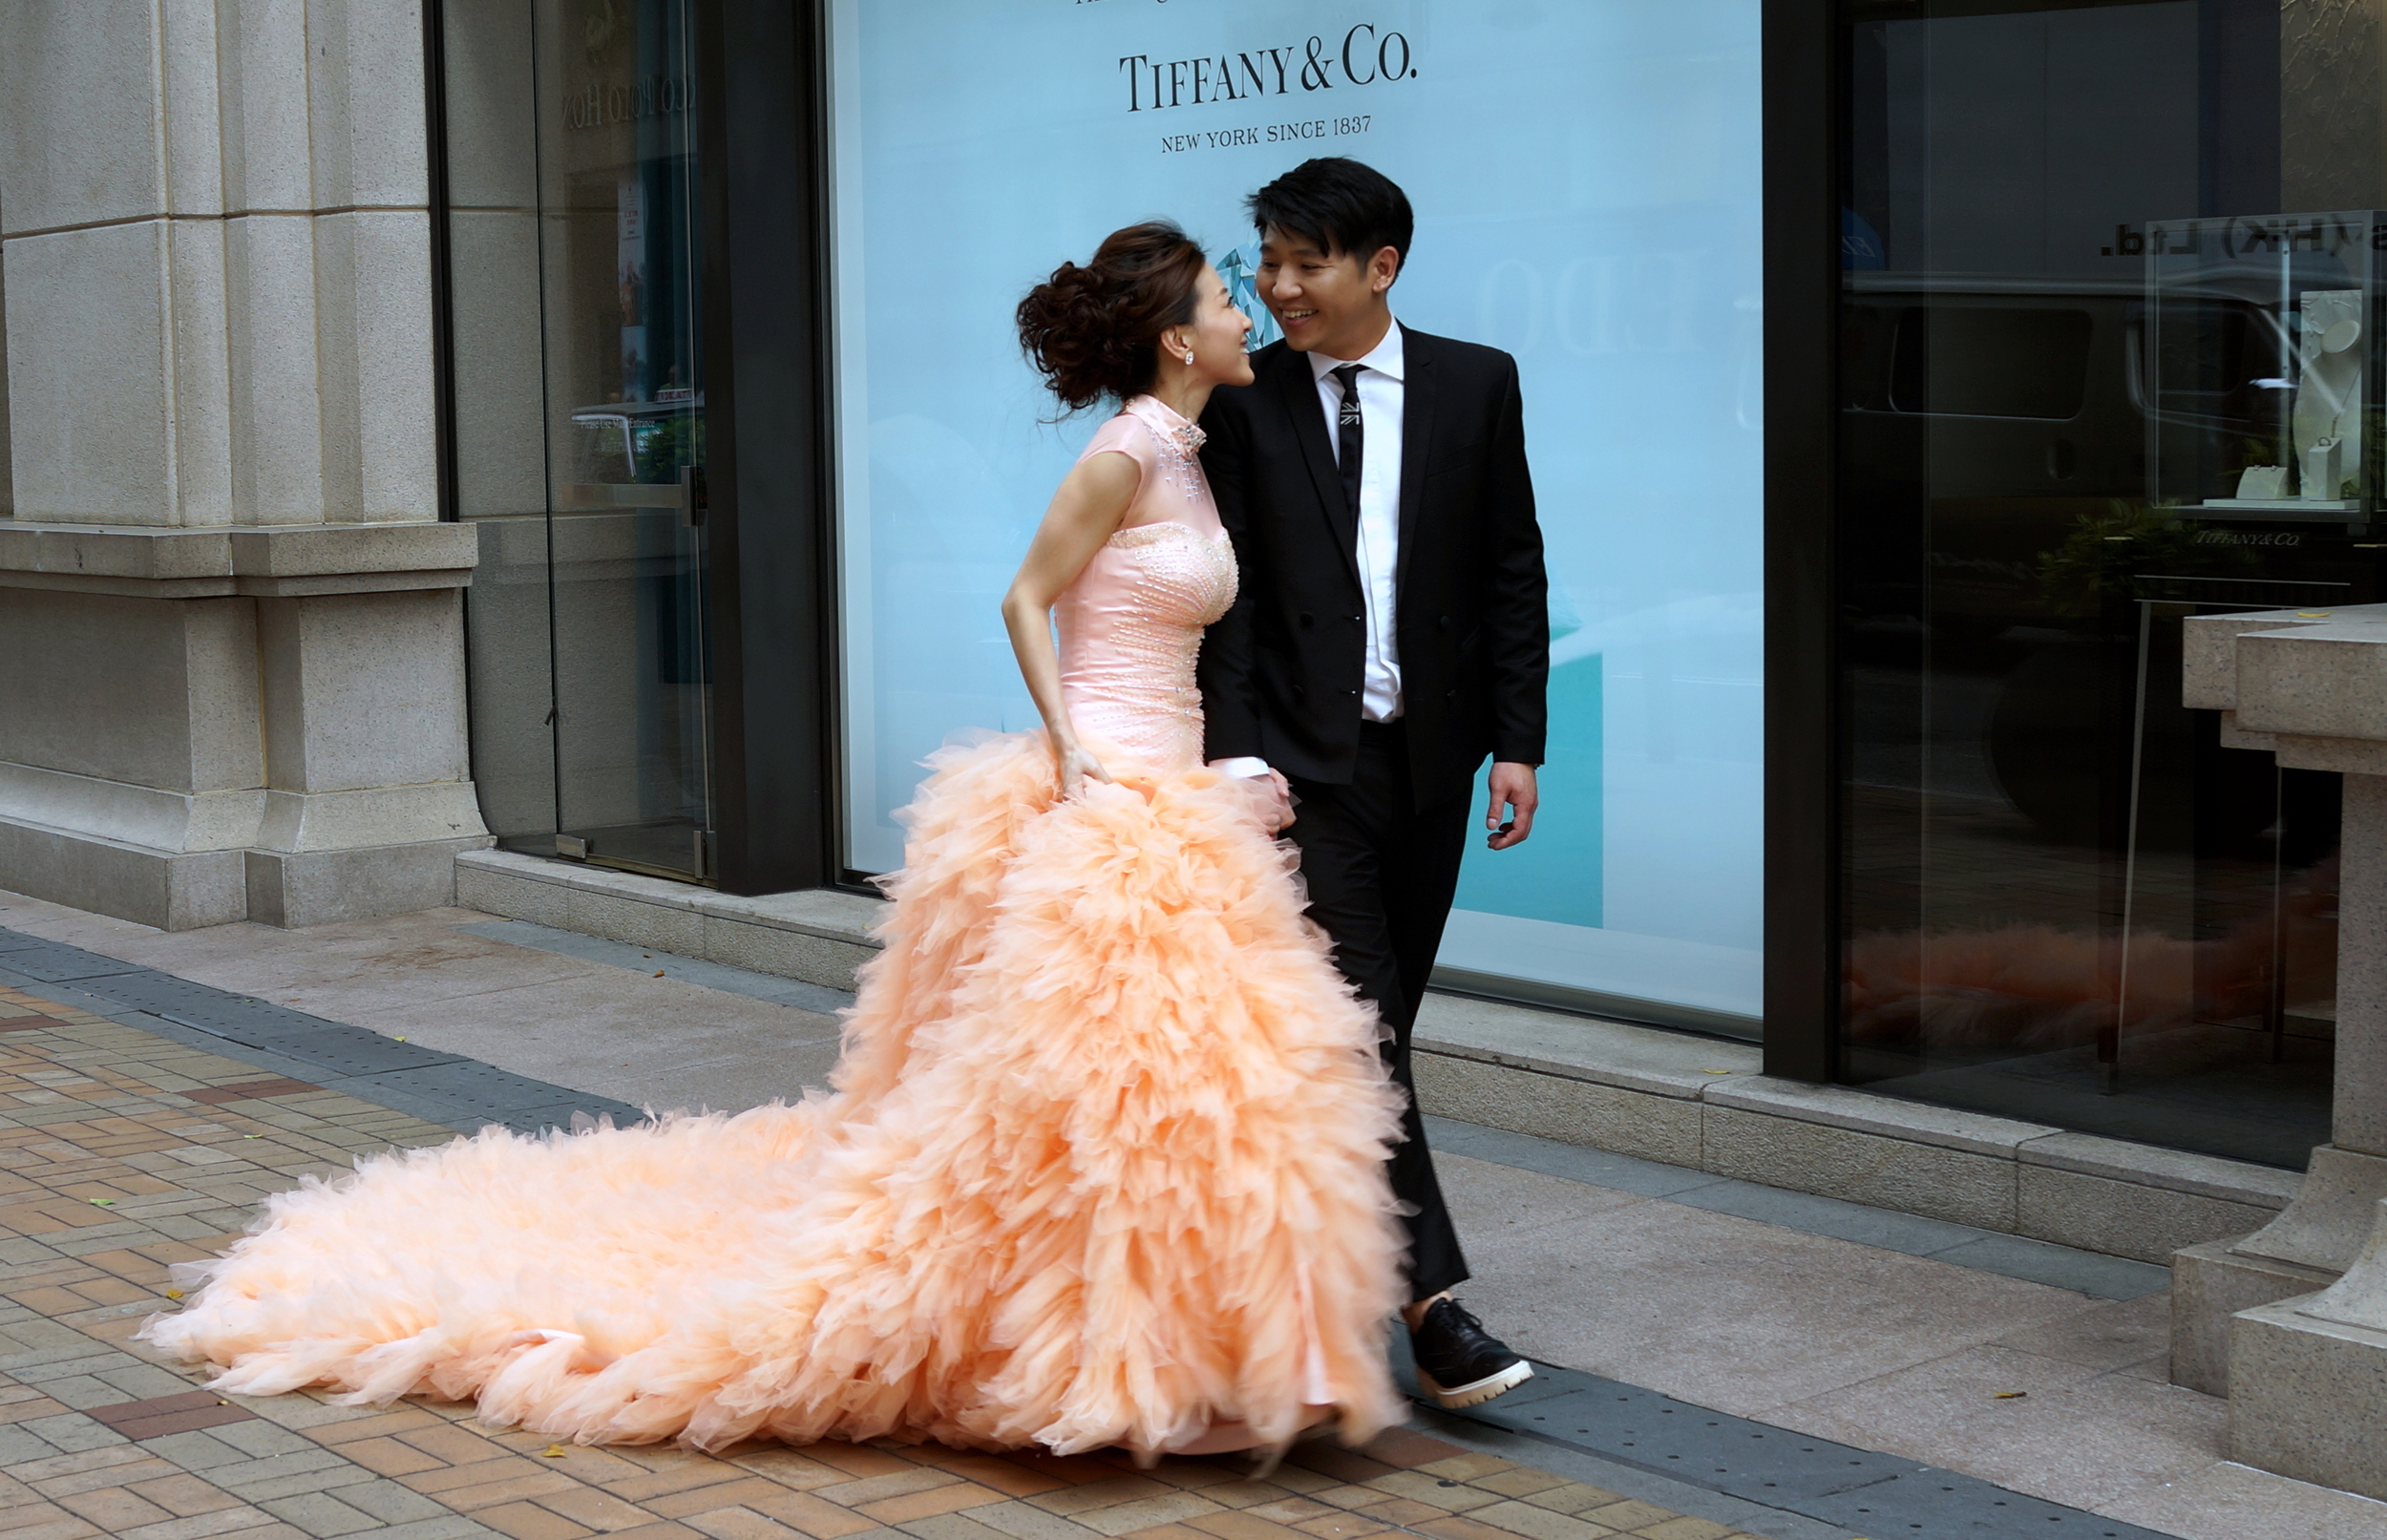 Isn't that just a lovely wedding dress! The pre - wedding photography outside Tiffany at 1881 Heritage in TST, Kowloon